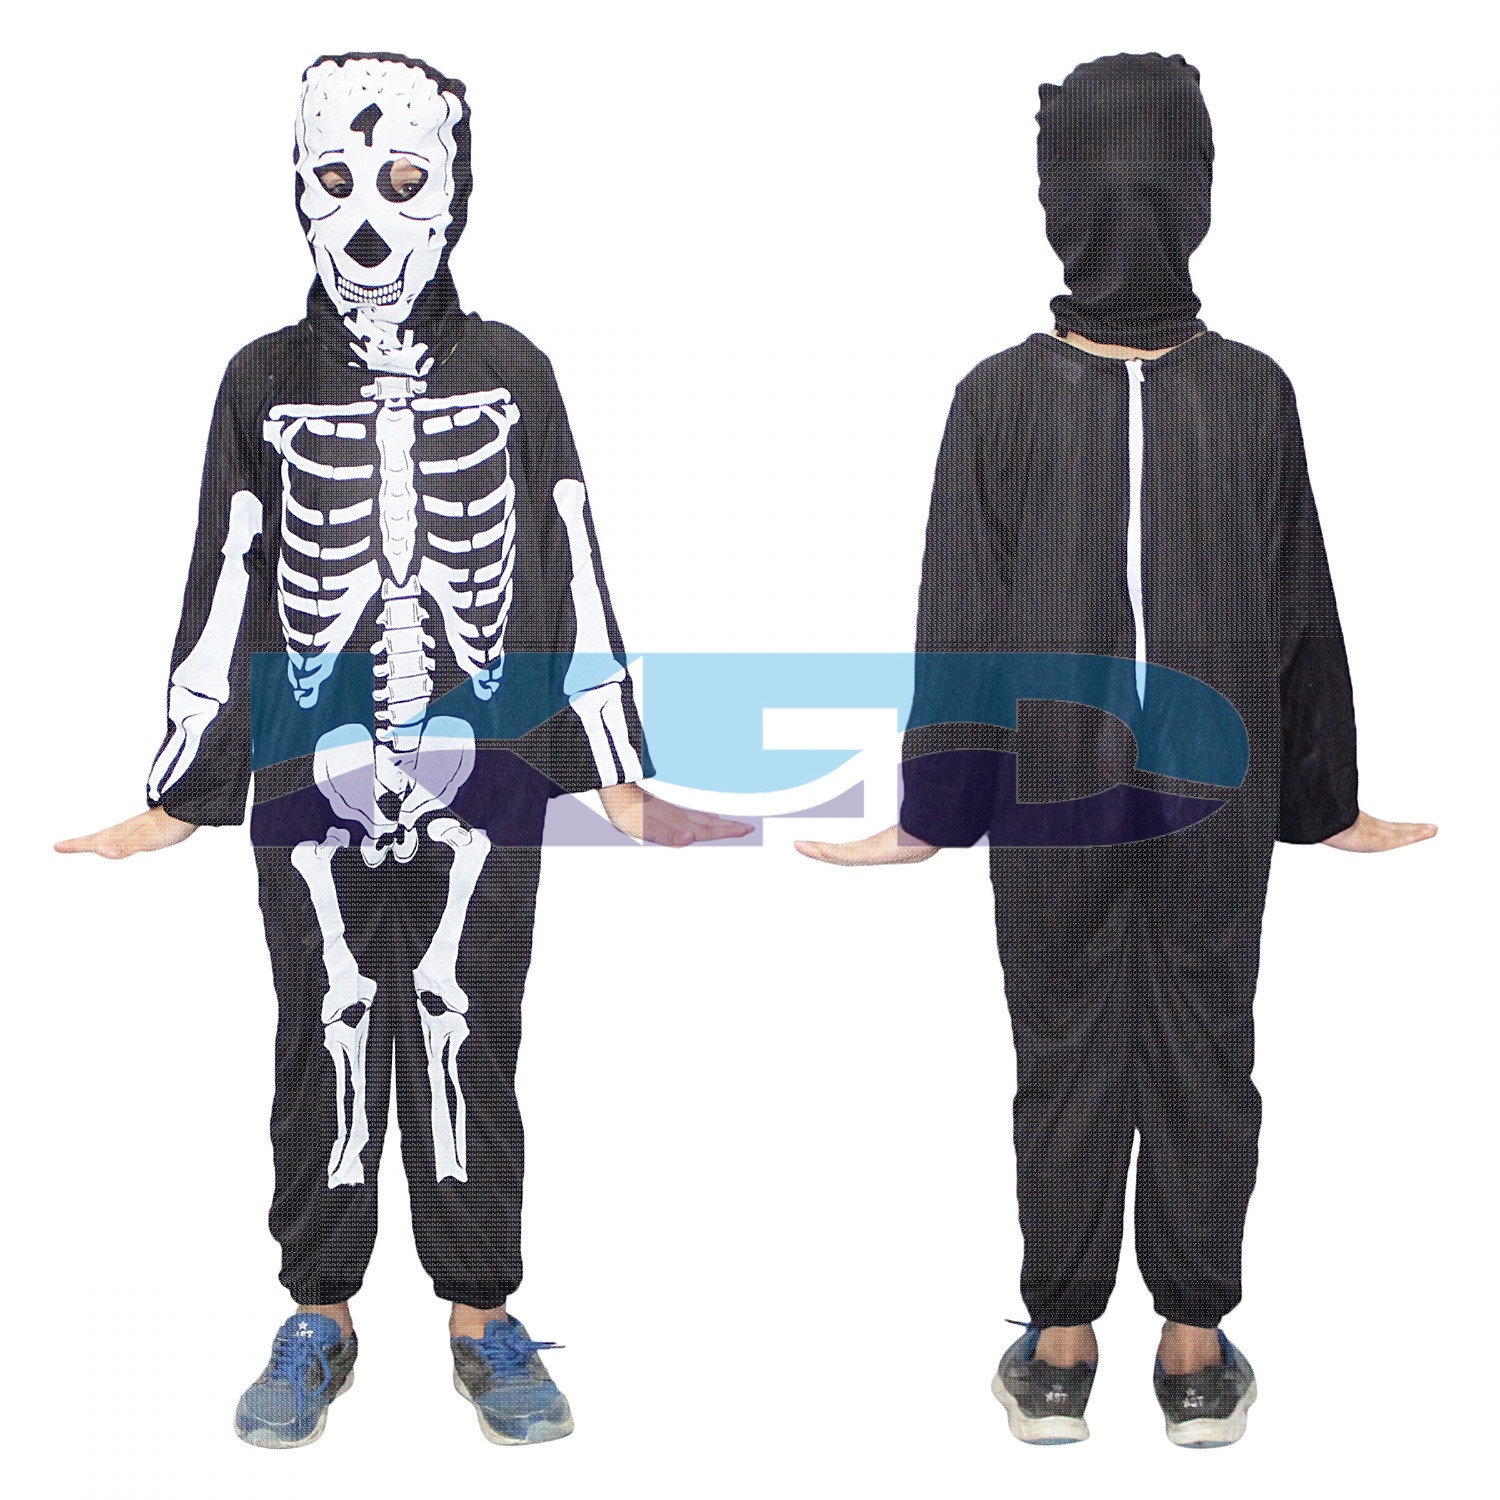 Skeleton fancy dress for kids,Halloween Costume for School Annual function/Theme Party/Competition/Stage Shows Dress